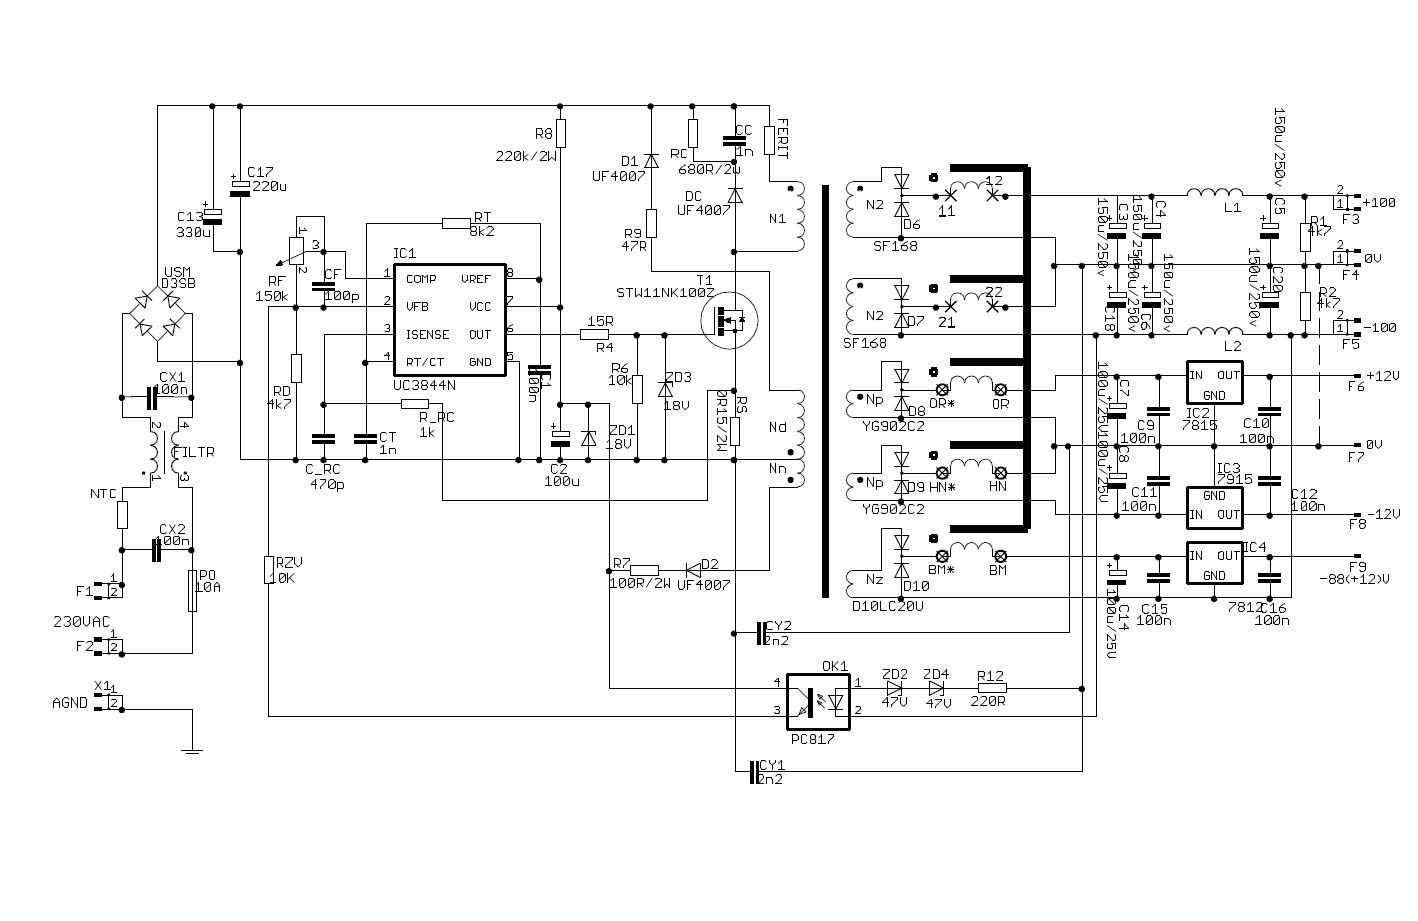 Smps Circuit Diagram For Audio Amplifier All Kind Of Wiring Diagrams 20 Watt Stereo Using Tda2005 2x100v 500w Power Supply Electronics Projects Circuits Lm386